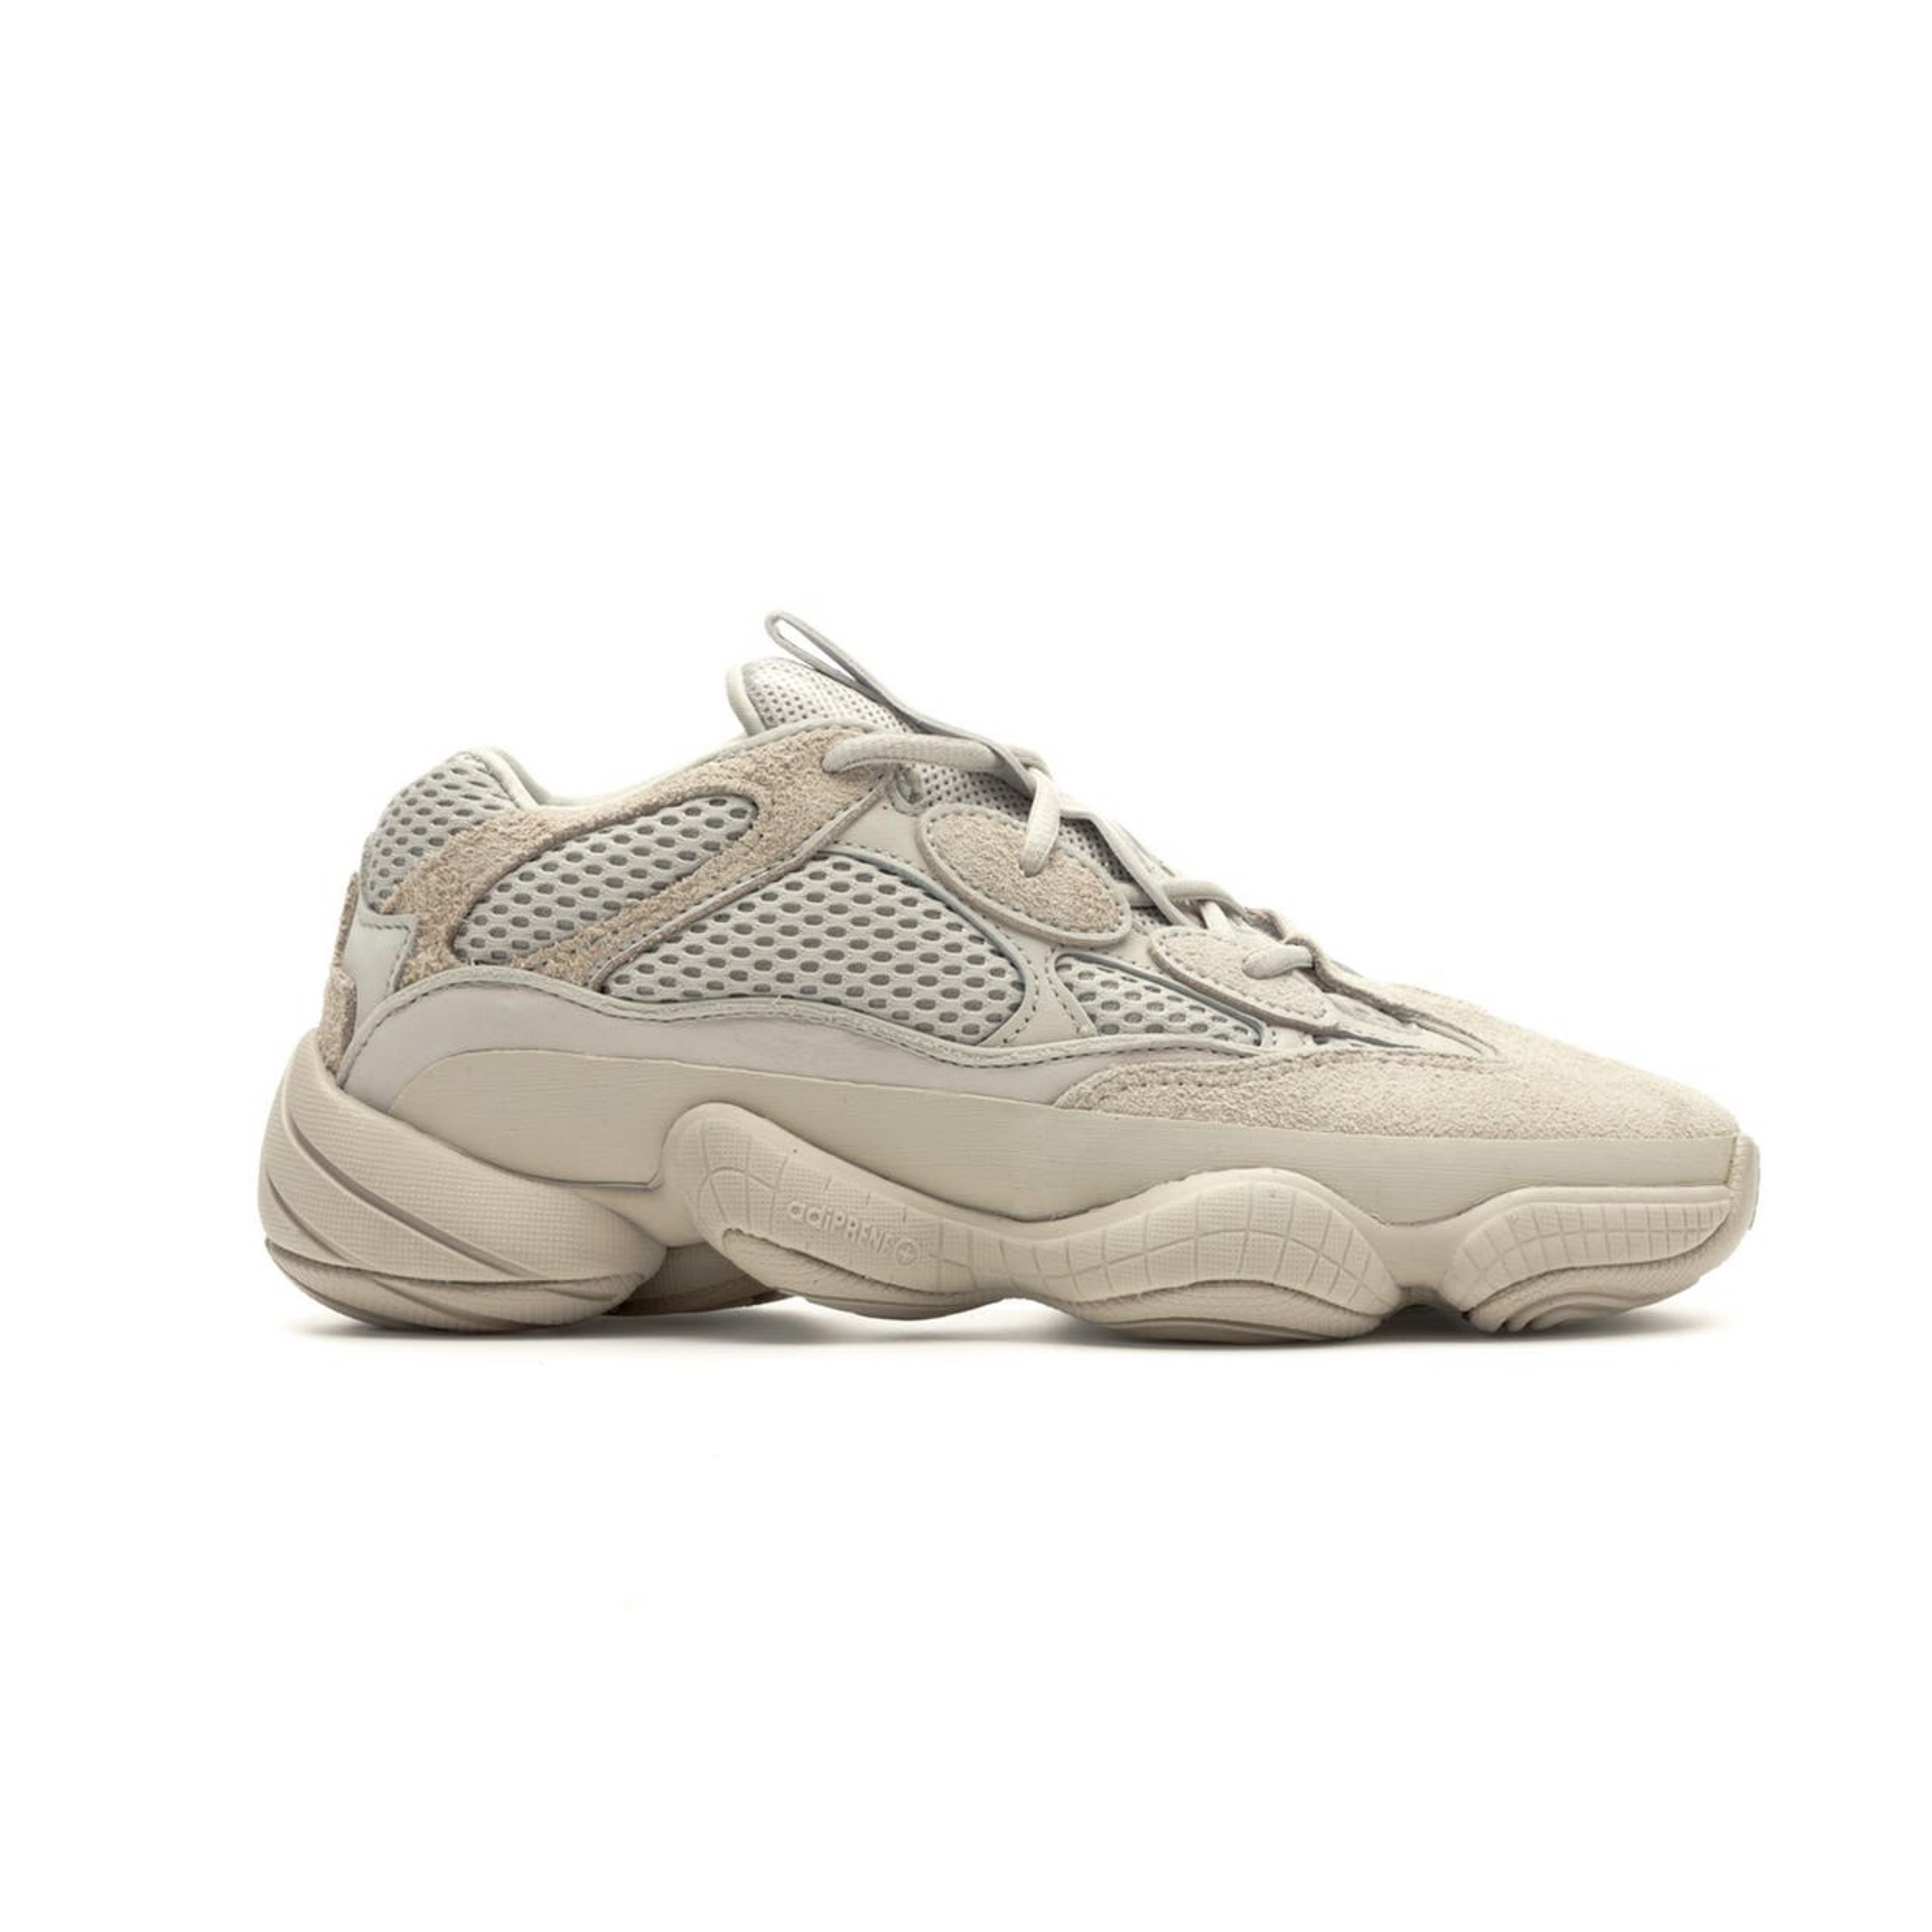 2125fc362 Adidas Yeezy 500 Blush Uk 7.5 Us 8